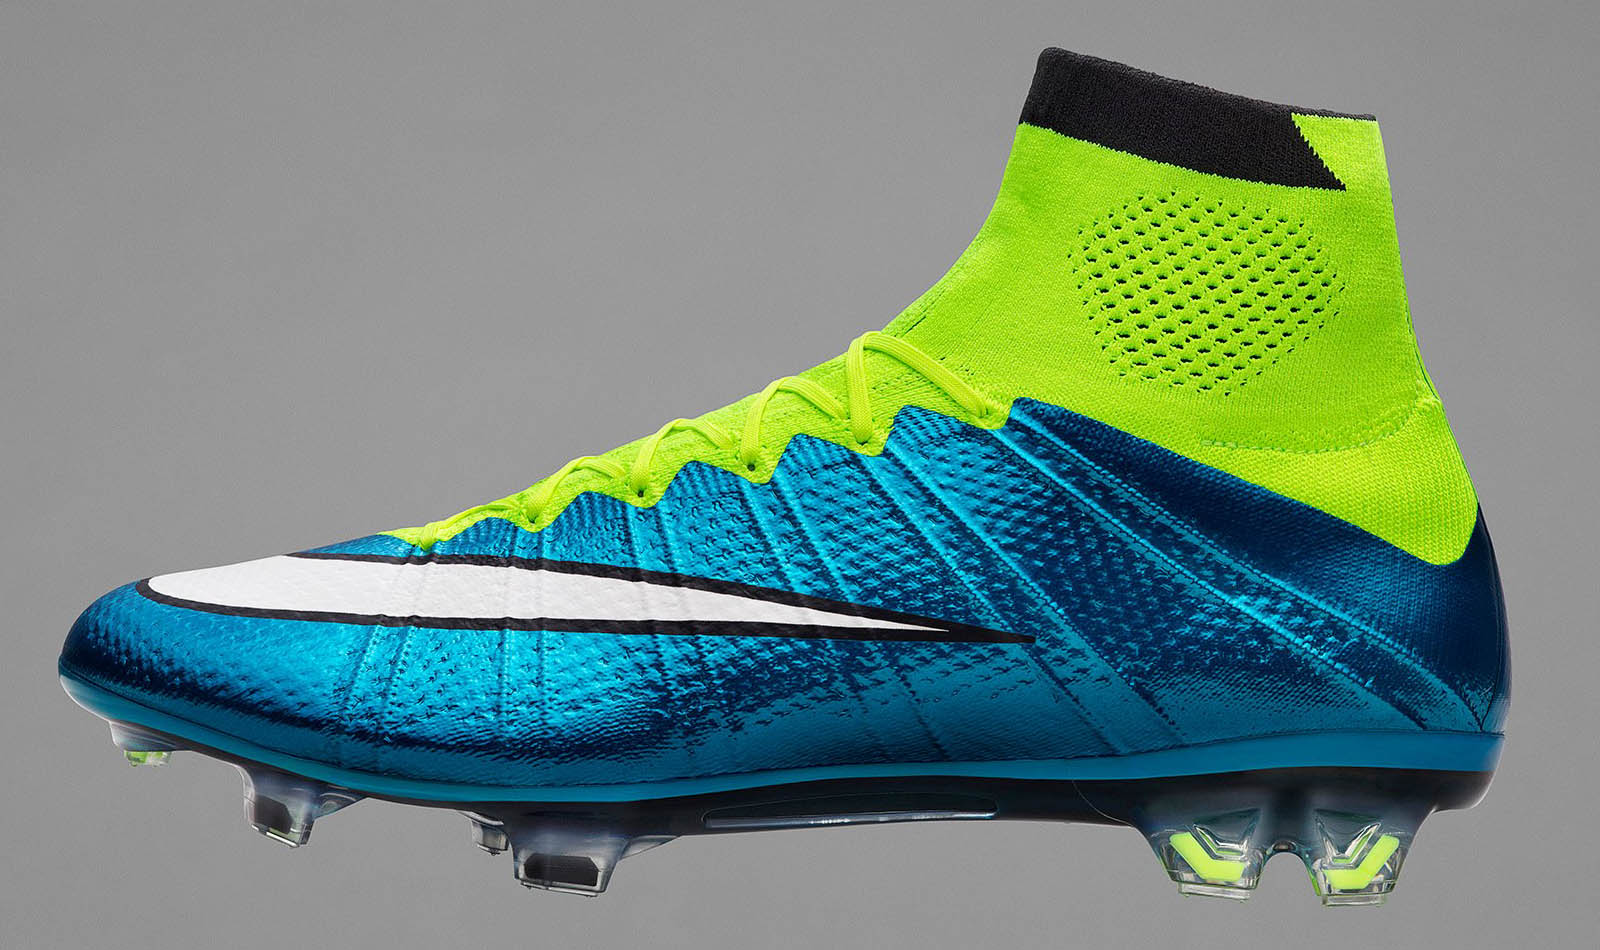 nike mercurial superfly 2015 women 39 s boots released. Black Bedroom Furniture Sets. Home Design Ideas